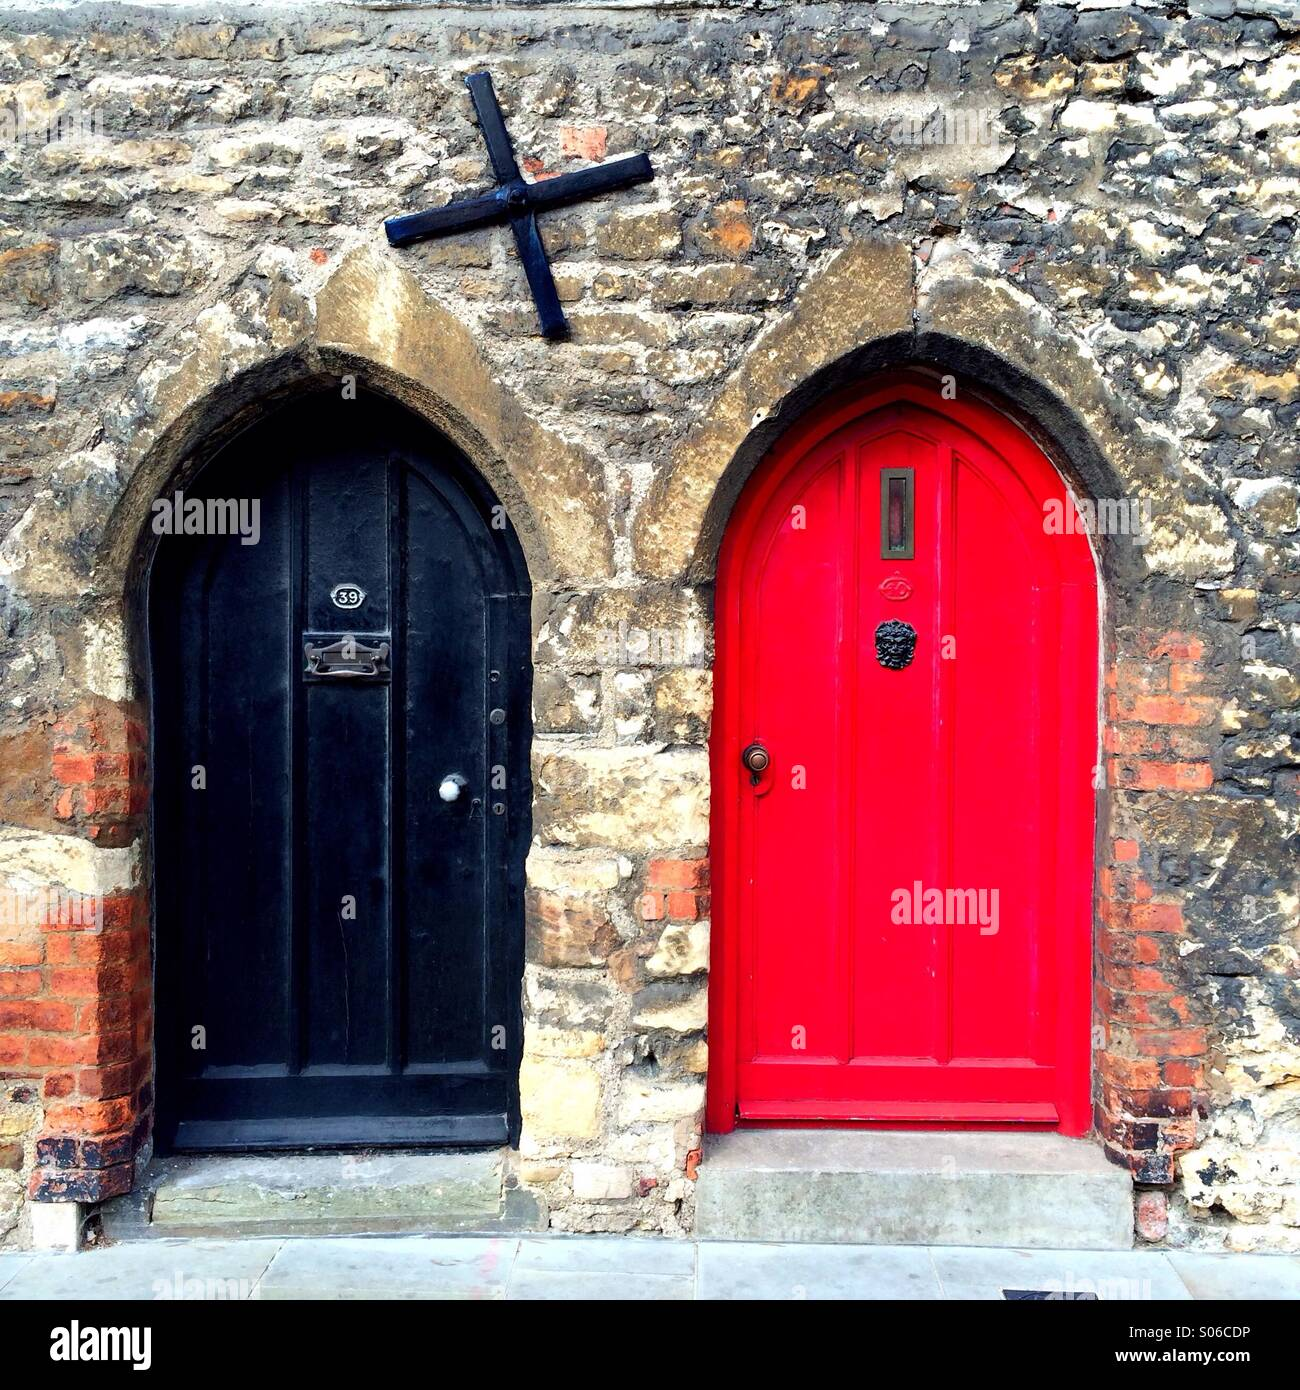 Medieval arched black and red doors, Bailgate, Lincoln UK - Stock Image